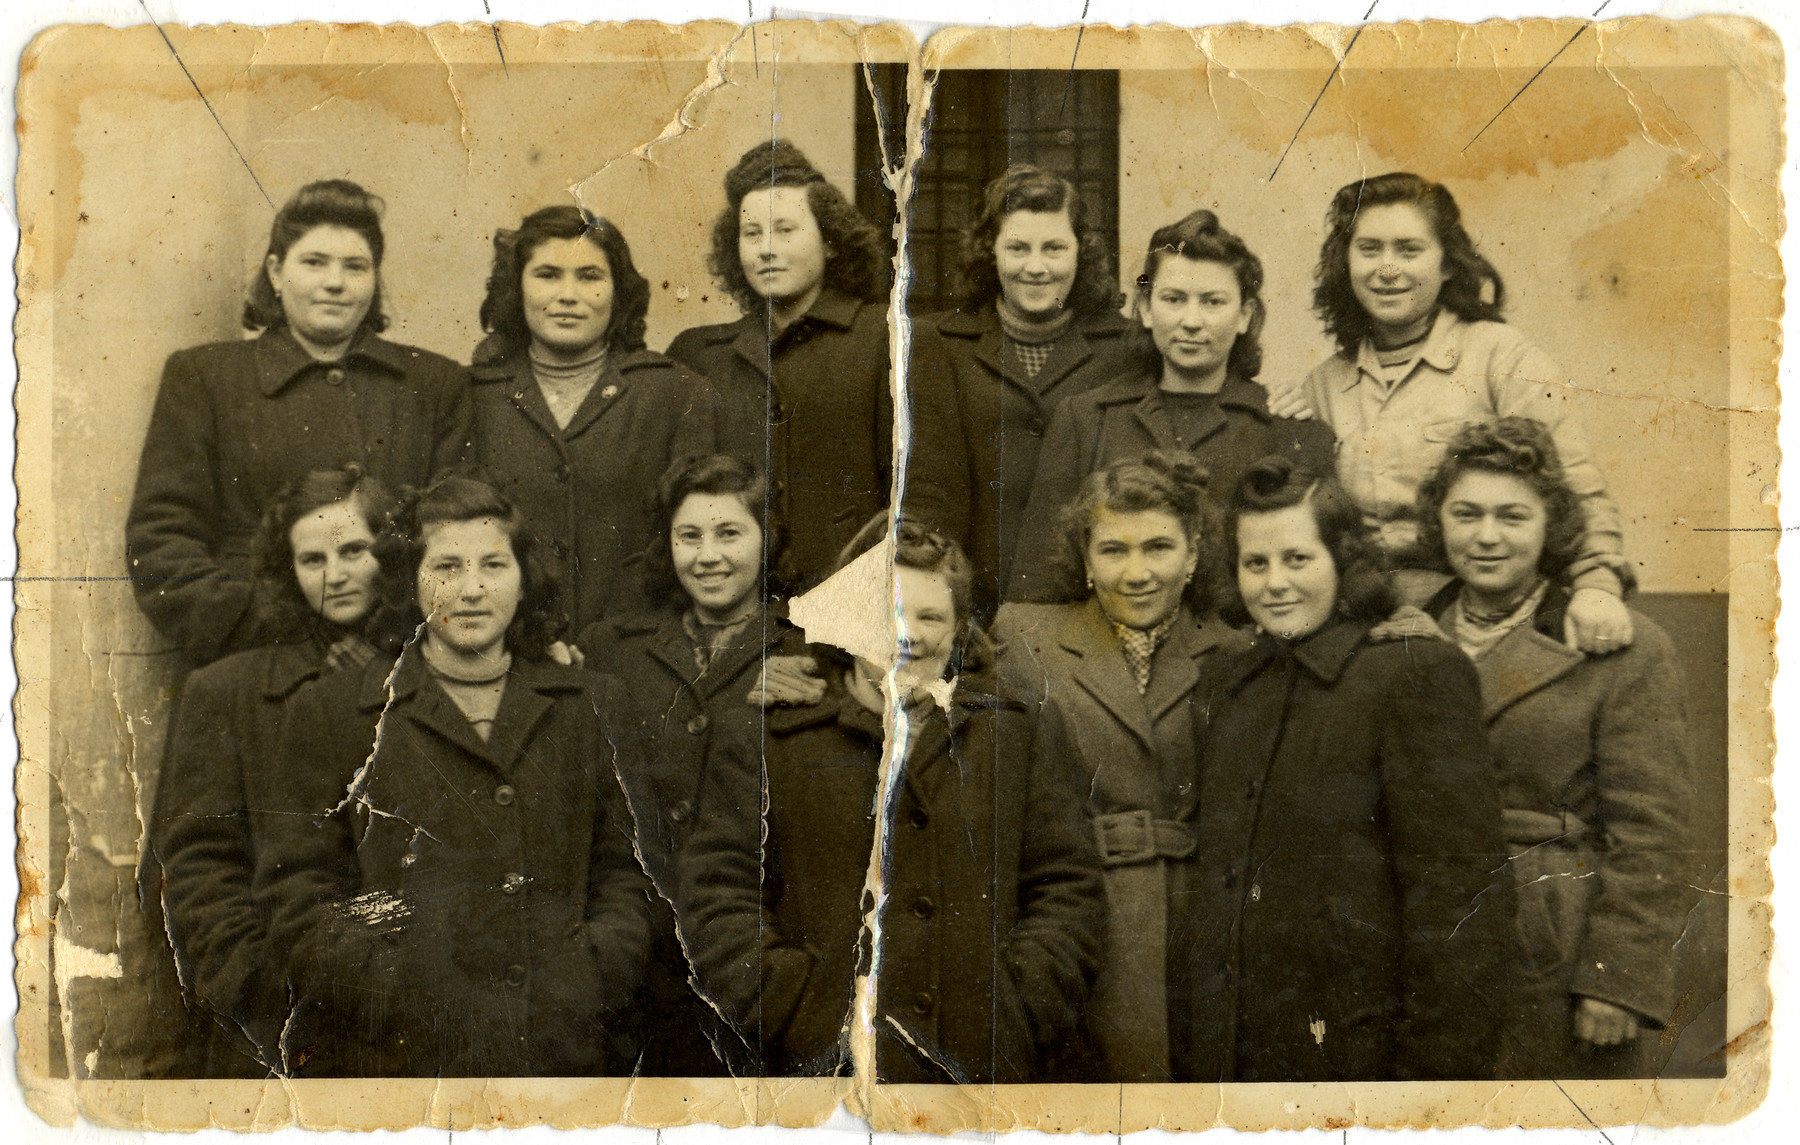 Group portrait of young women from the Kibbutz Mekor Baruch hachshara in Bacoli, Italy.    Pictured from left to right: (front row) Miriam Gutman, Malka Gutman, Chaya (Evi) Weiss, Mali Deutsch, unknown, Haviva Gutman, Pola.  (second row) Tzipora (Ibi) Weiss, Rozsi Gutman, Bertha Gutman, Rivke Gutman, unkown and Giza Sorkis.